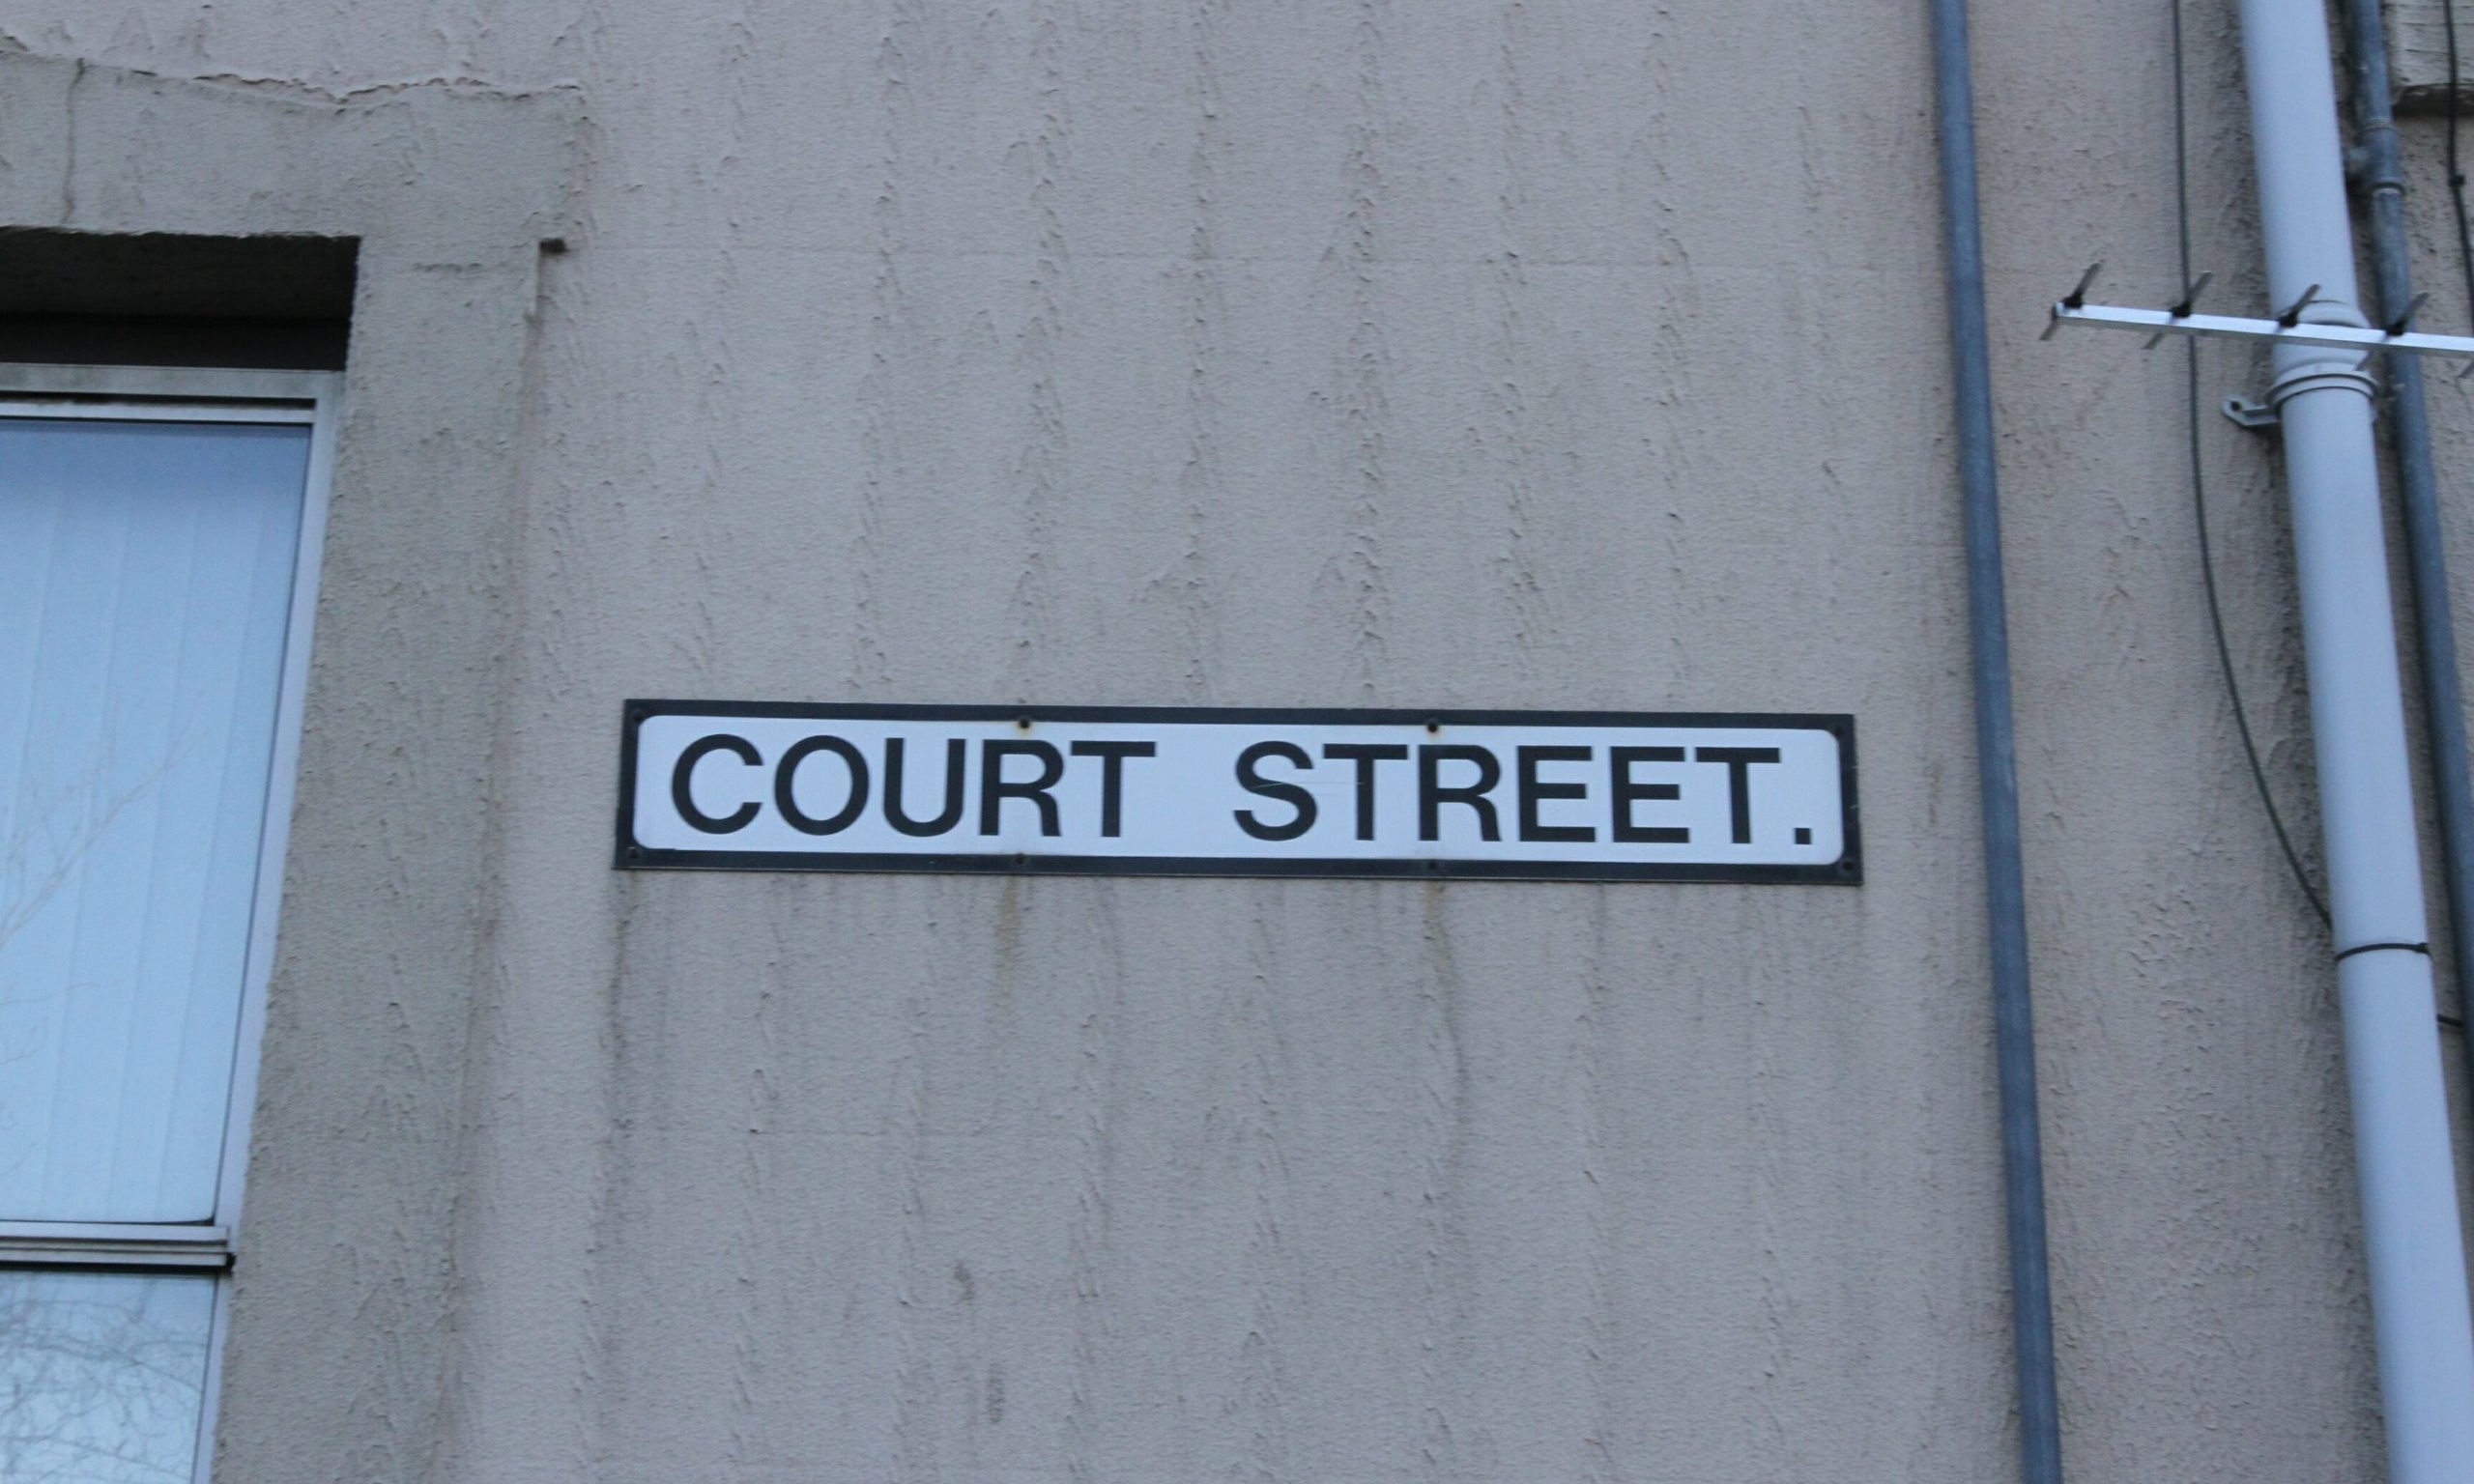 Police were called to Court Street after the sudden death of a man in his late 40s.